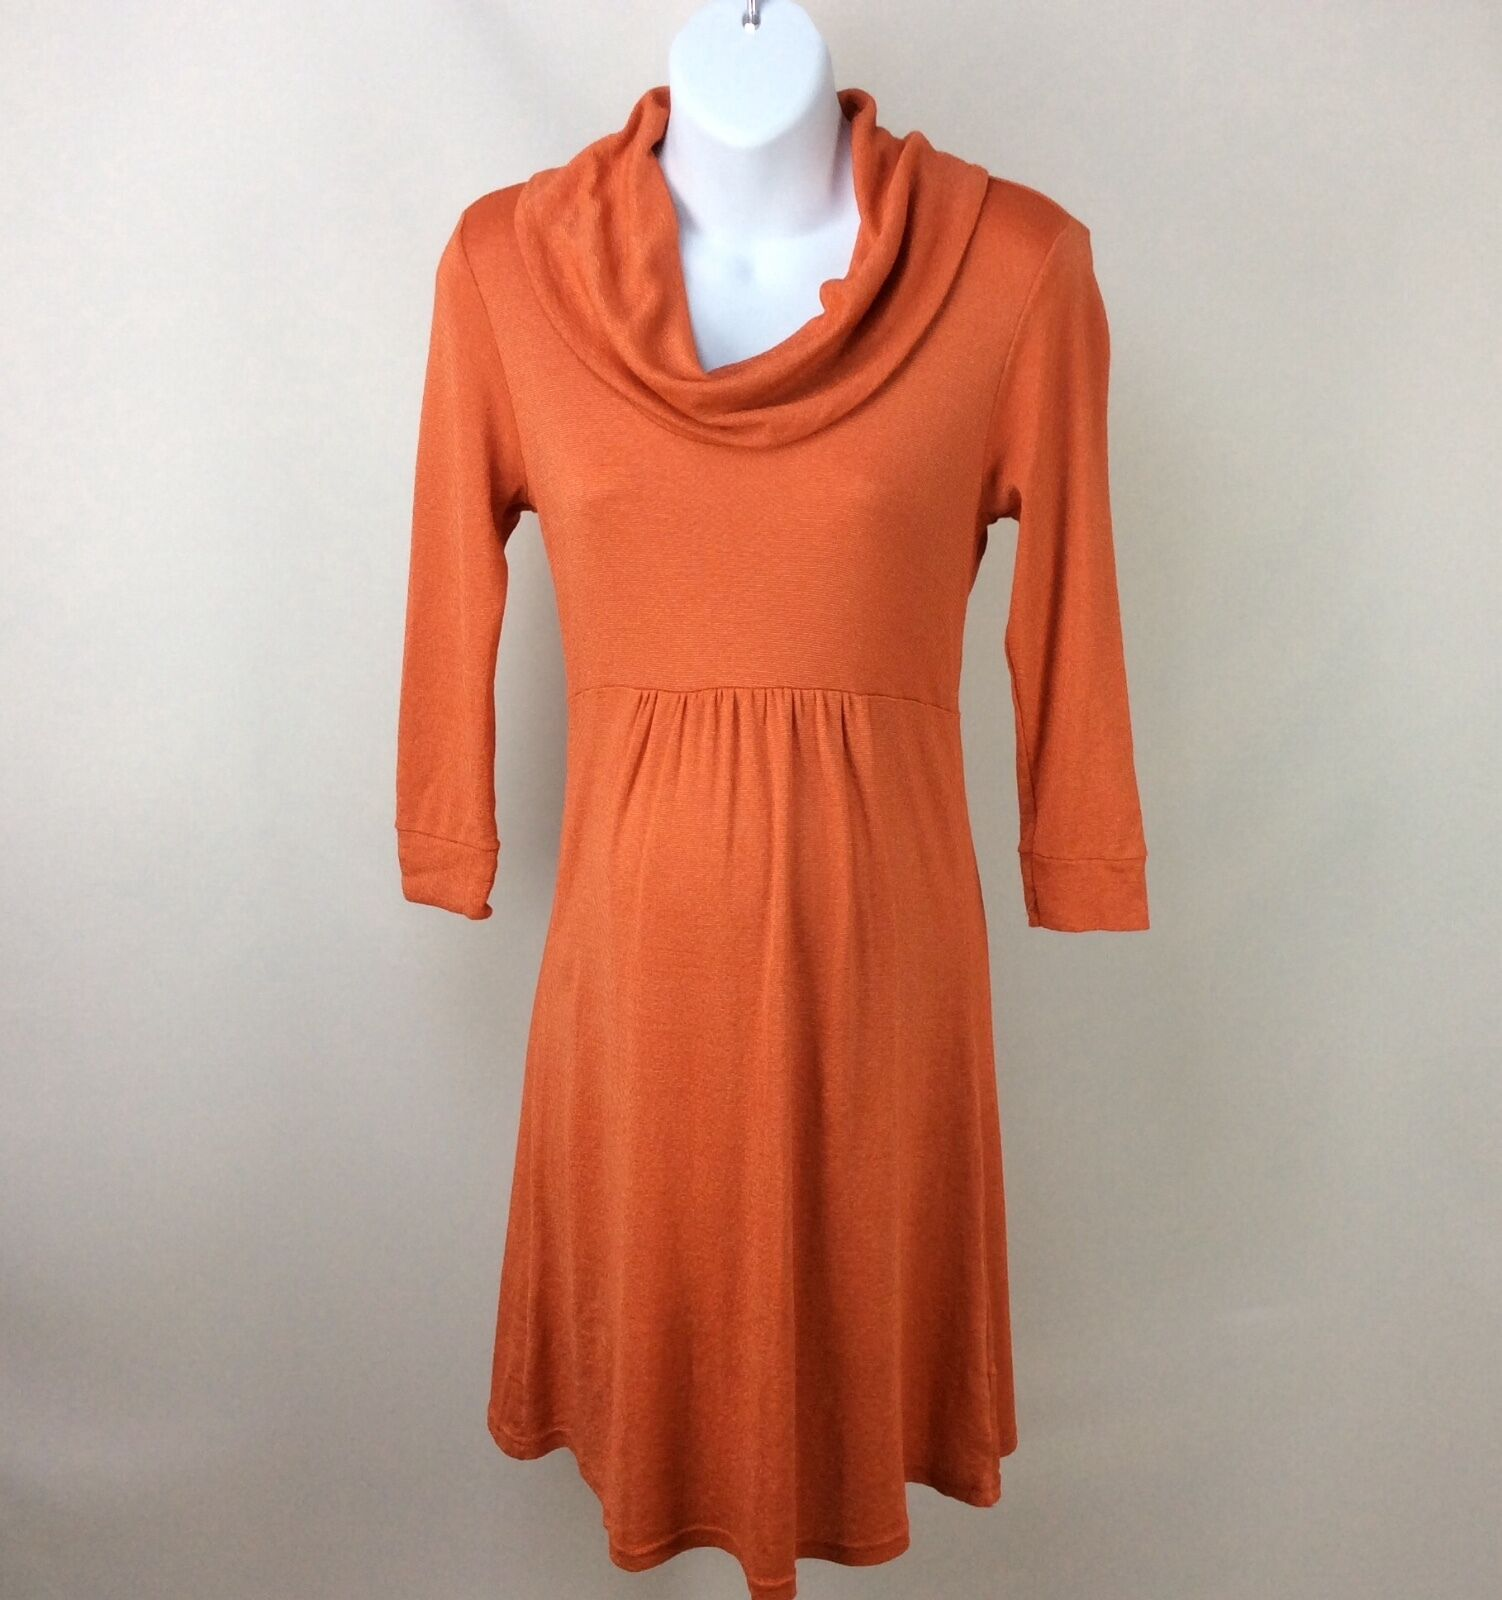 Michael stars maternity dress cowl neck one size shine orange picture 1 of 3 ombrellifo Images